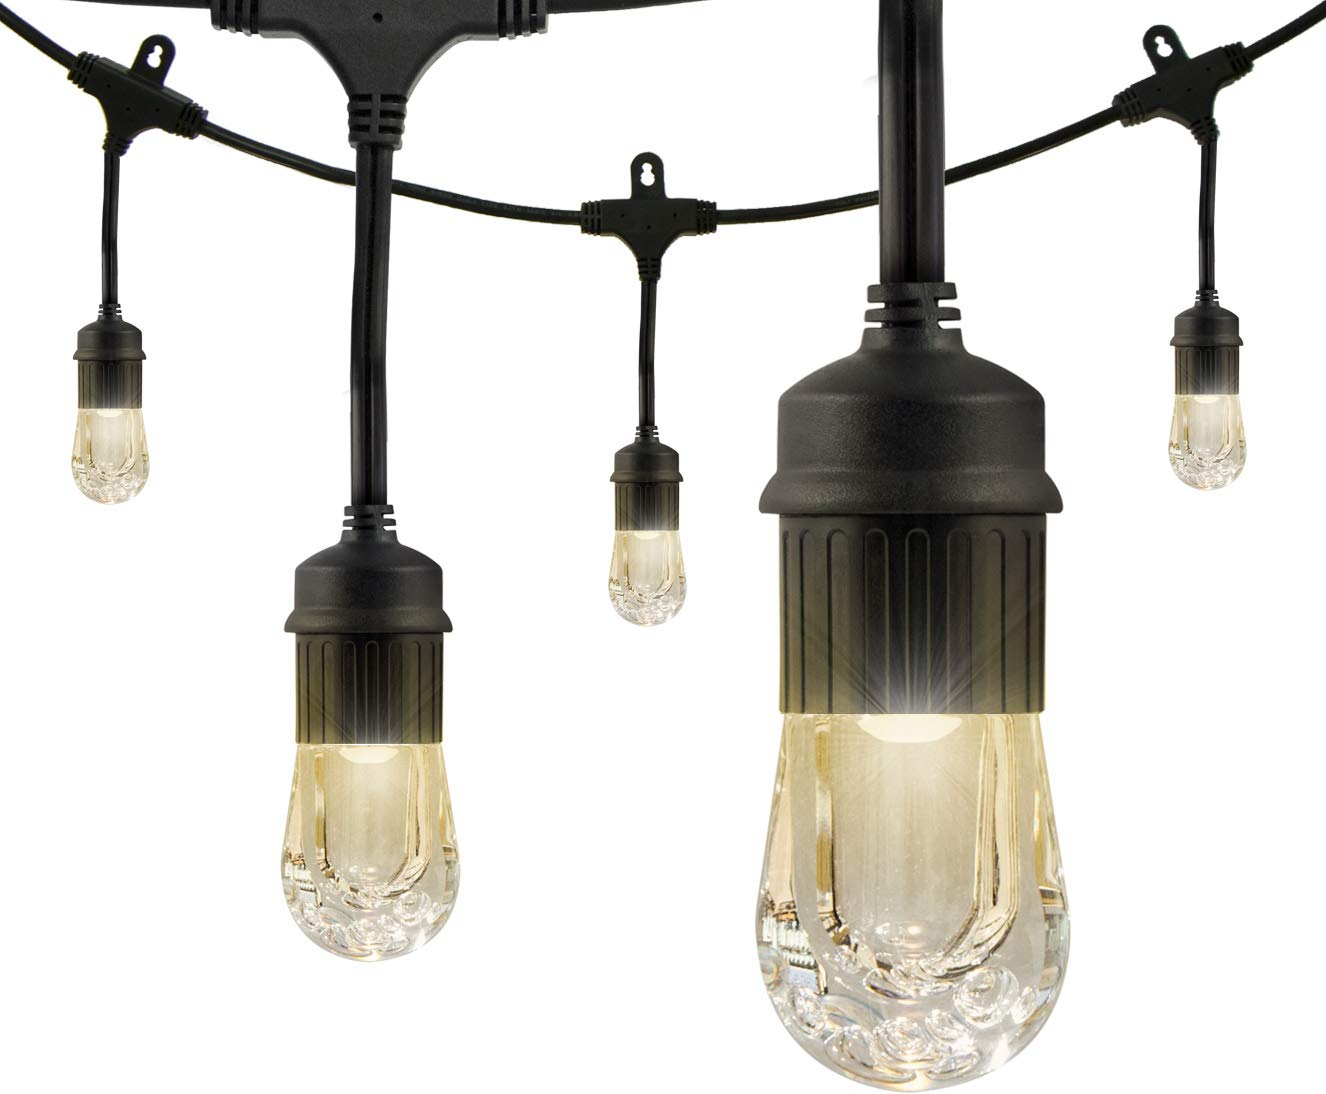 Enbrighten Classic LED Cafe String Lights, Black, 24 Foot Length, 12 Impact Resistant Lifetime Bulbs, Premium, Shatterproof, Weatherproof, Indoor/Outdoor, Commercial Grade, UL Listed, 31662